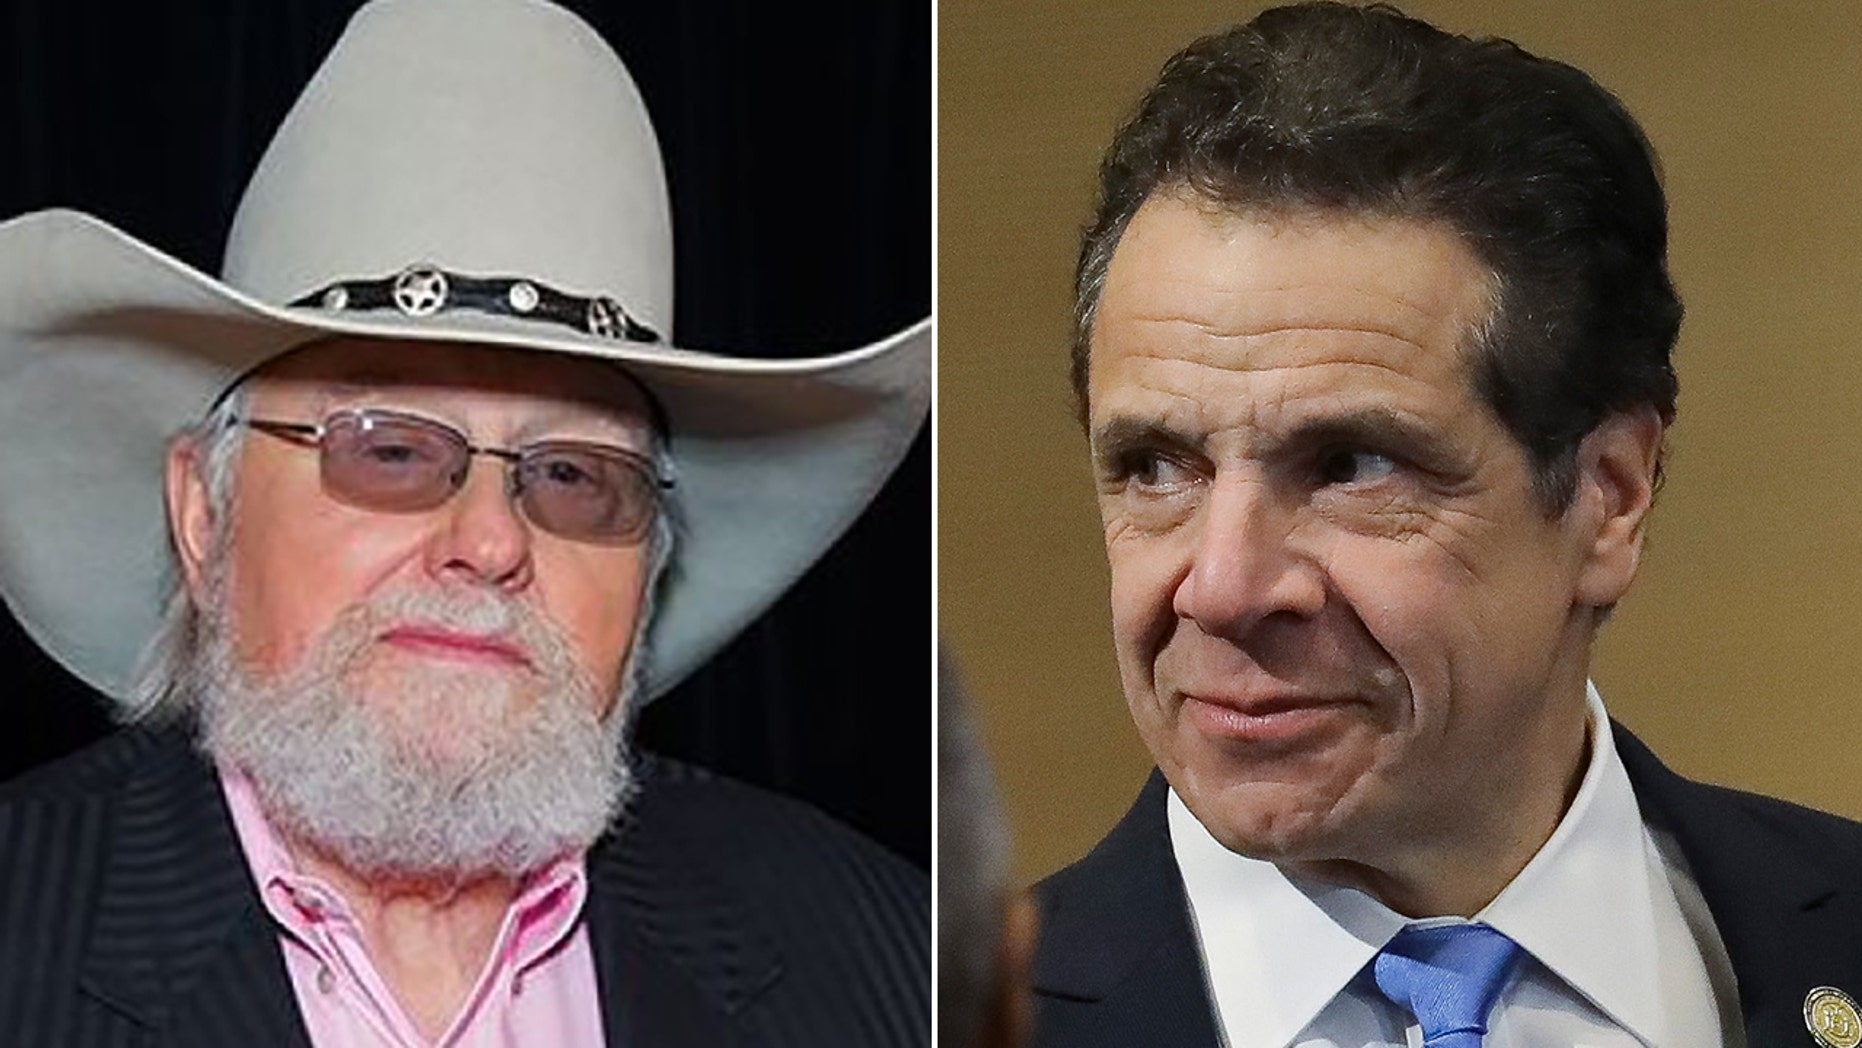 Charlie Daniels and Democratic New York Gov. Andrew Cuomo.